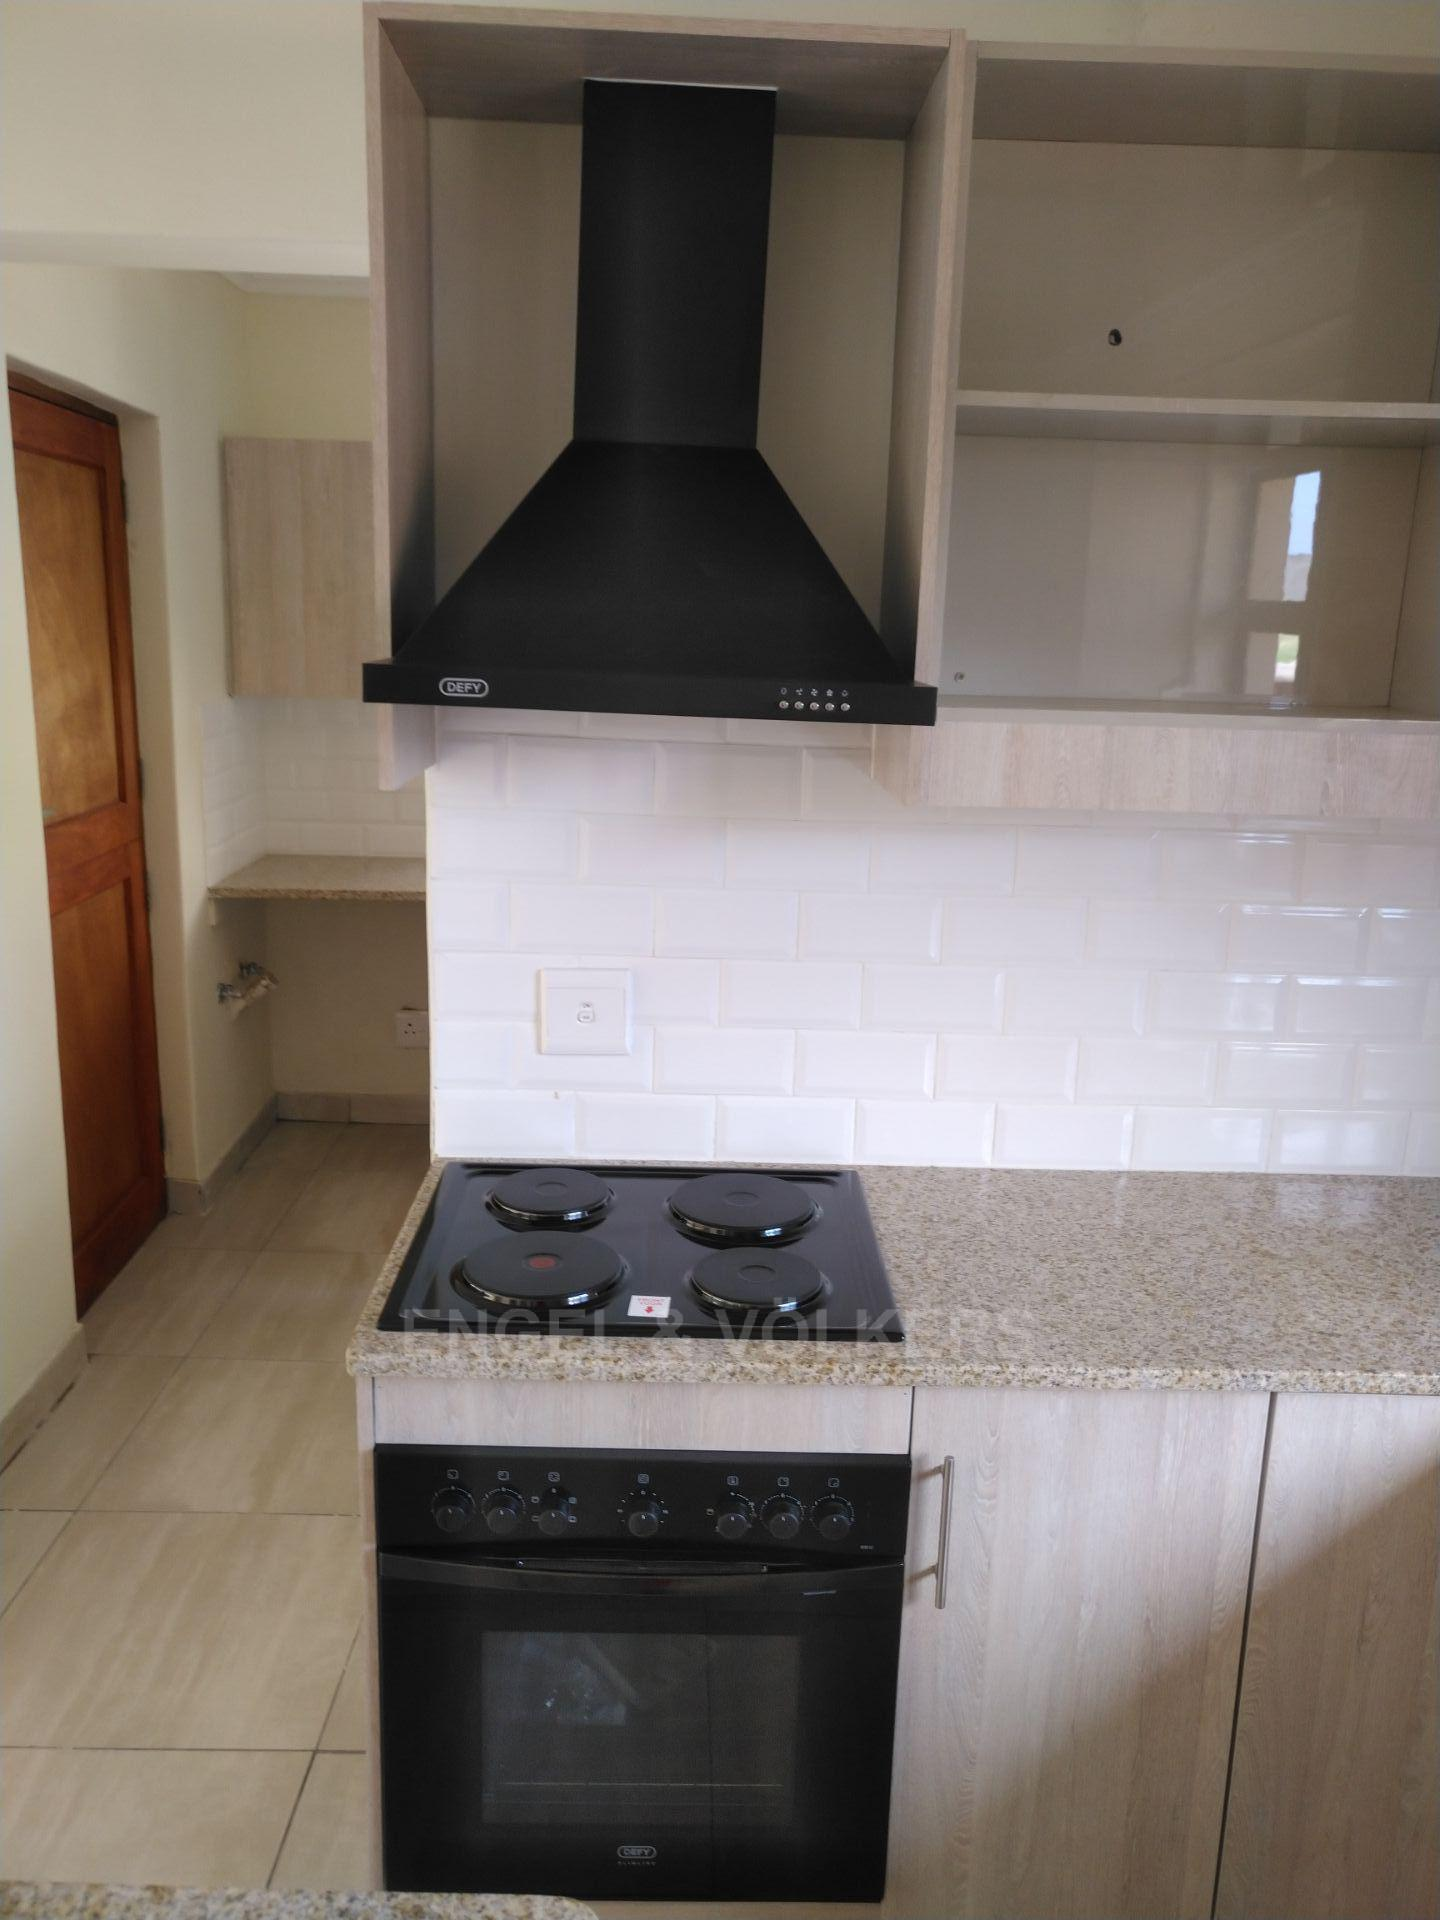 House in Xanadu Eco Park - Stove with extractor